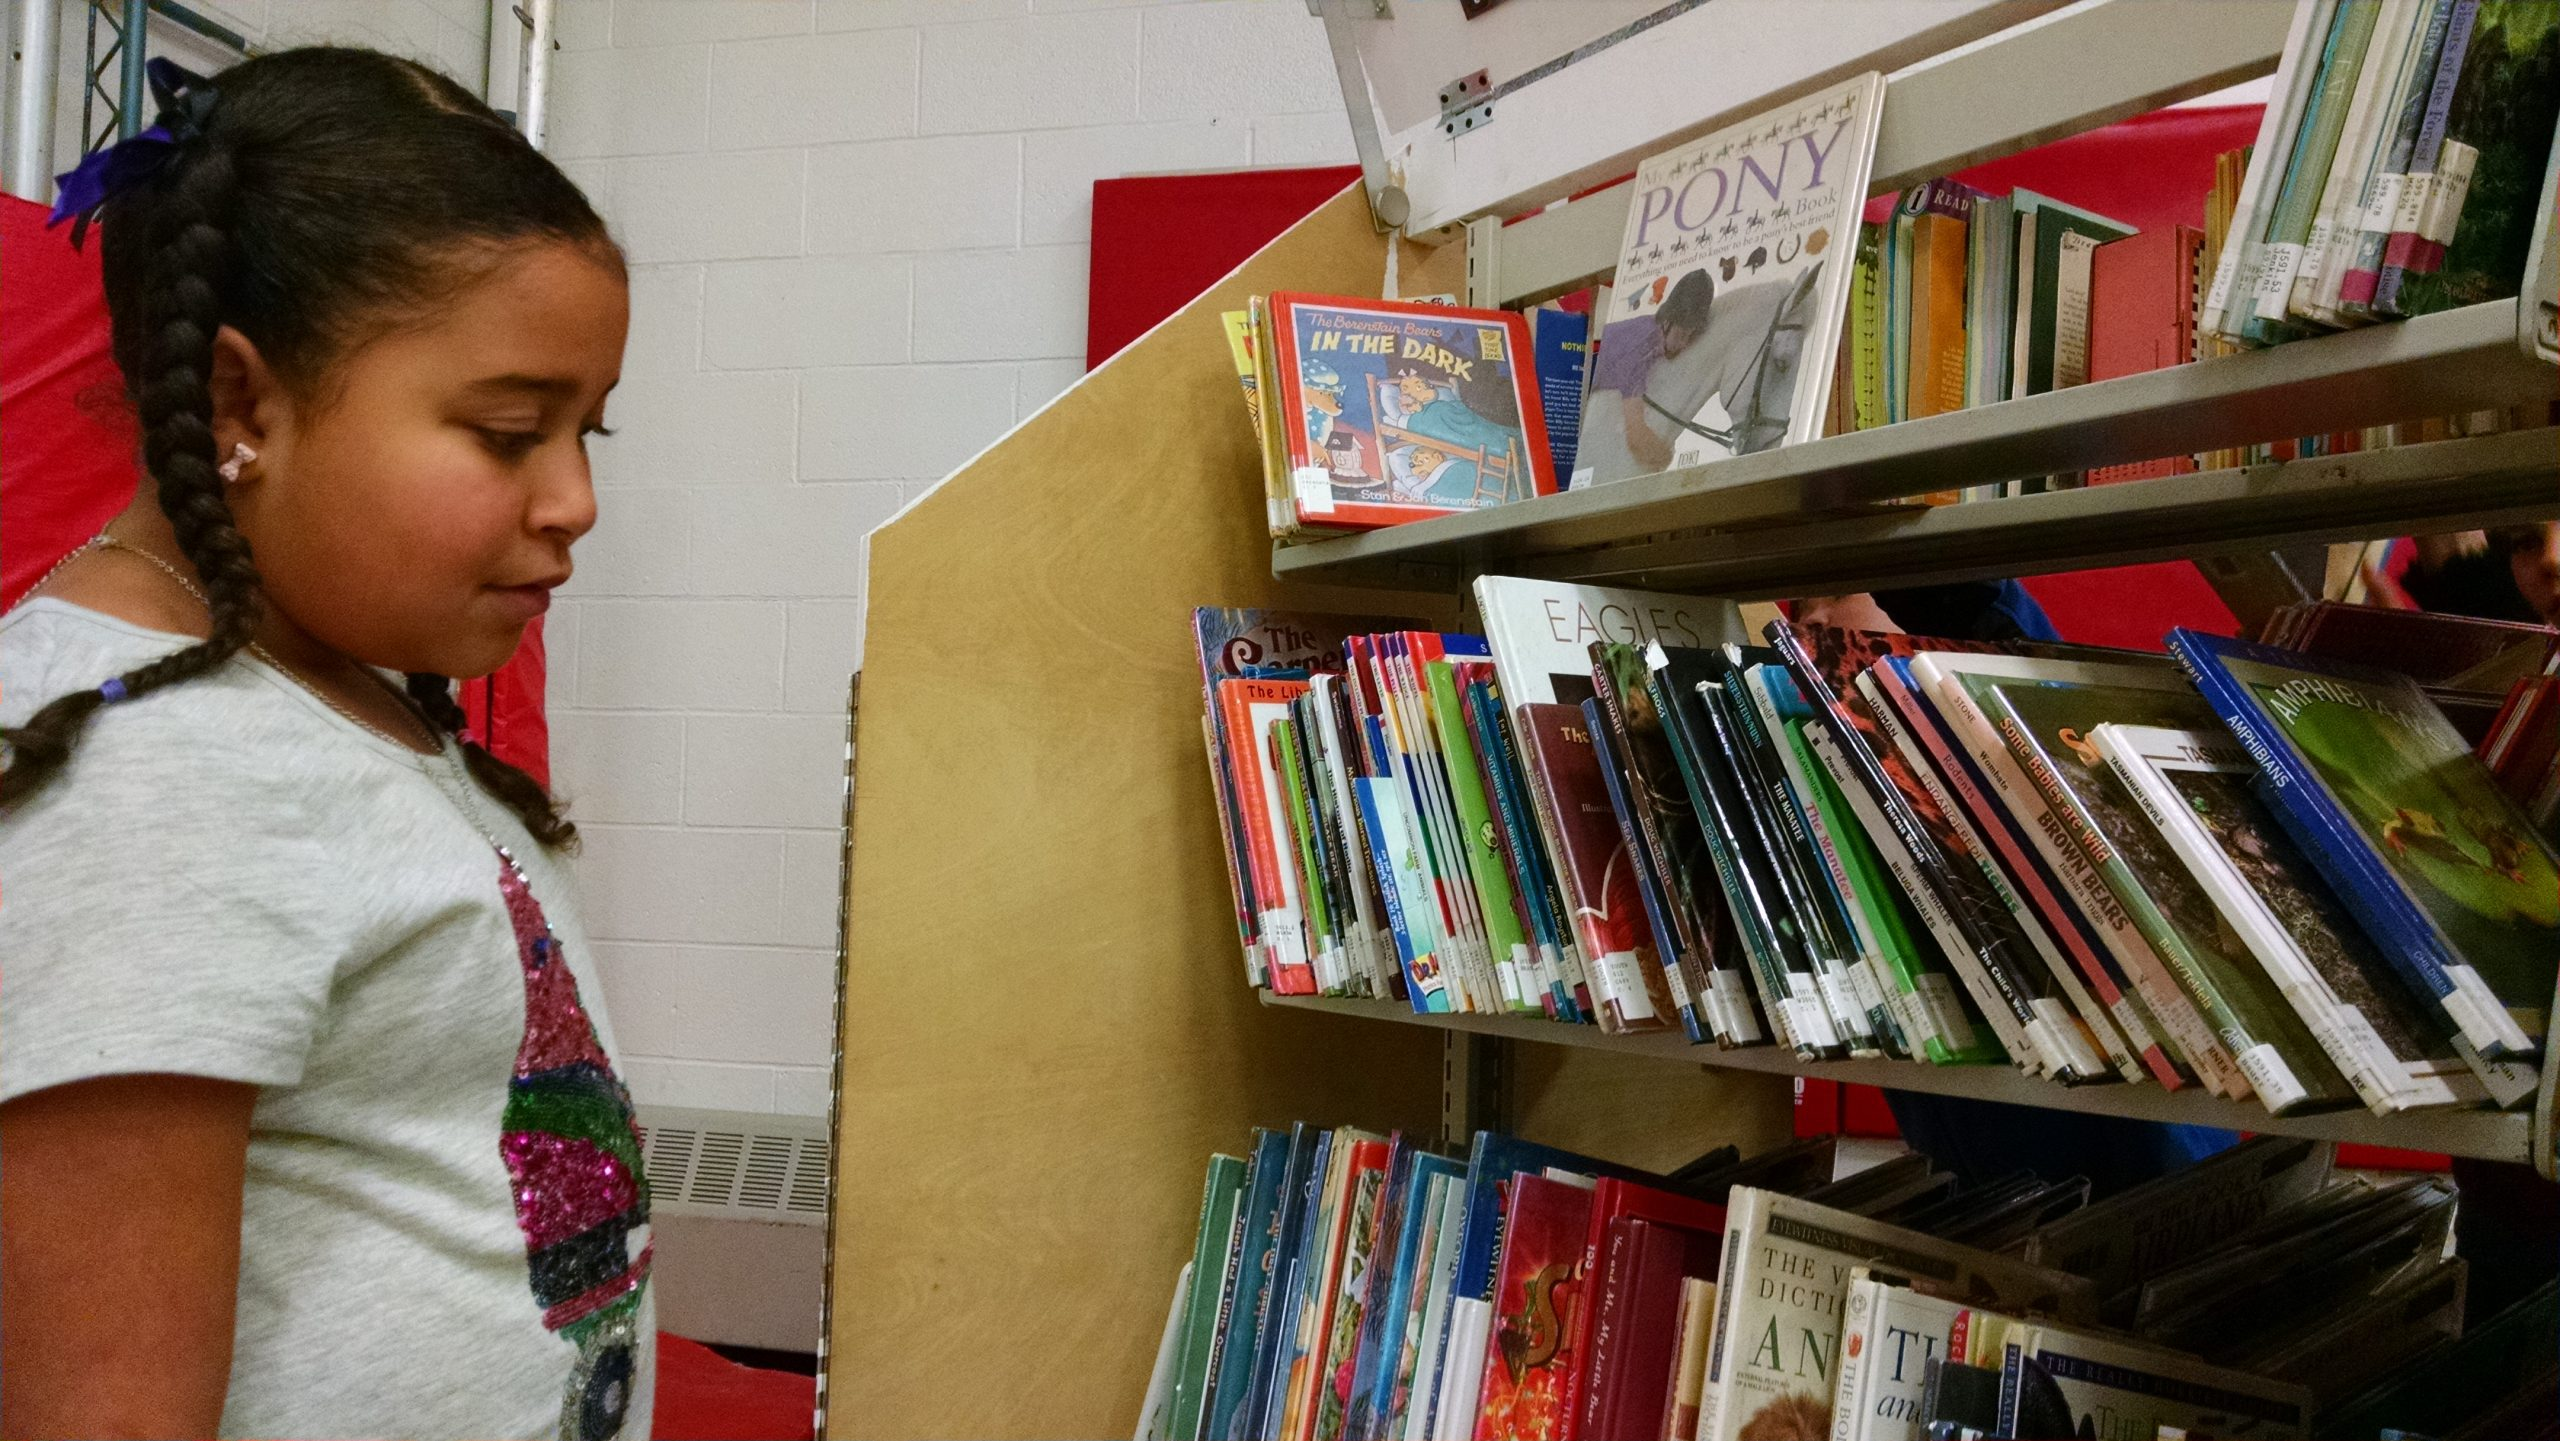 A student from Garfield Elementary mulls which book to take from the Pop-Up Library.